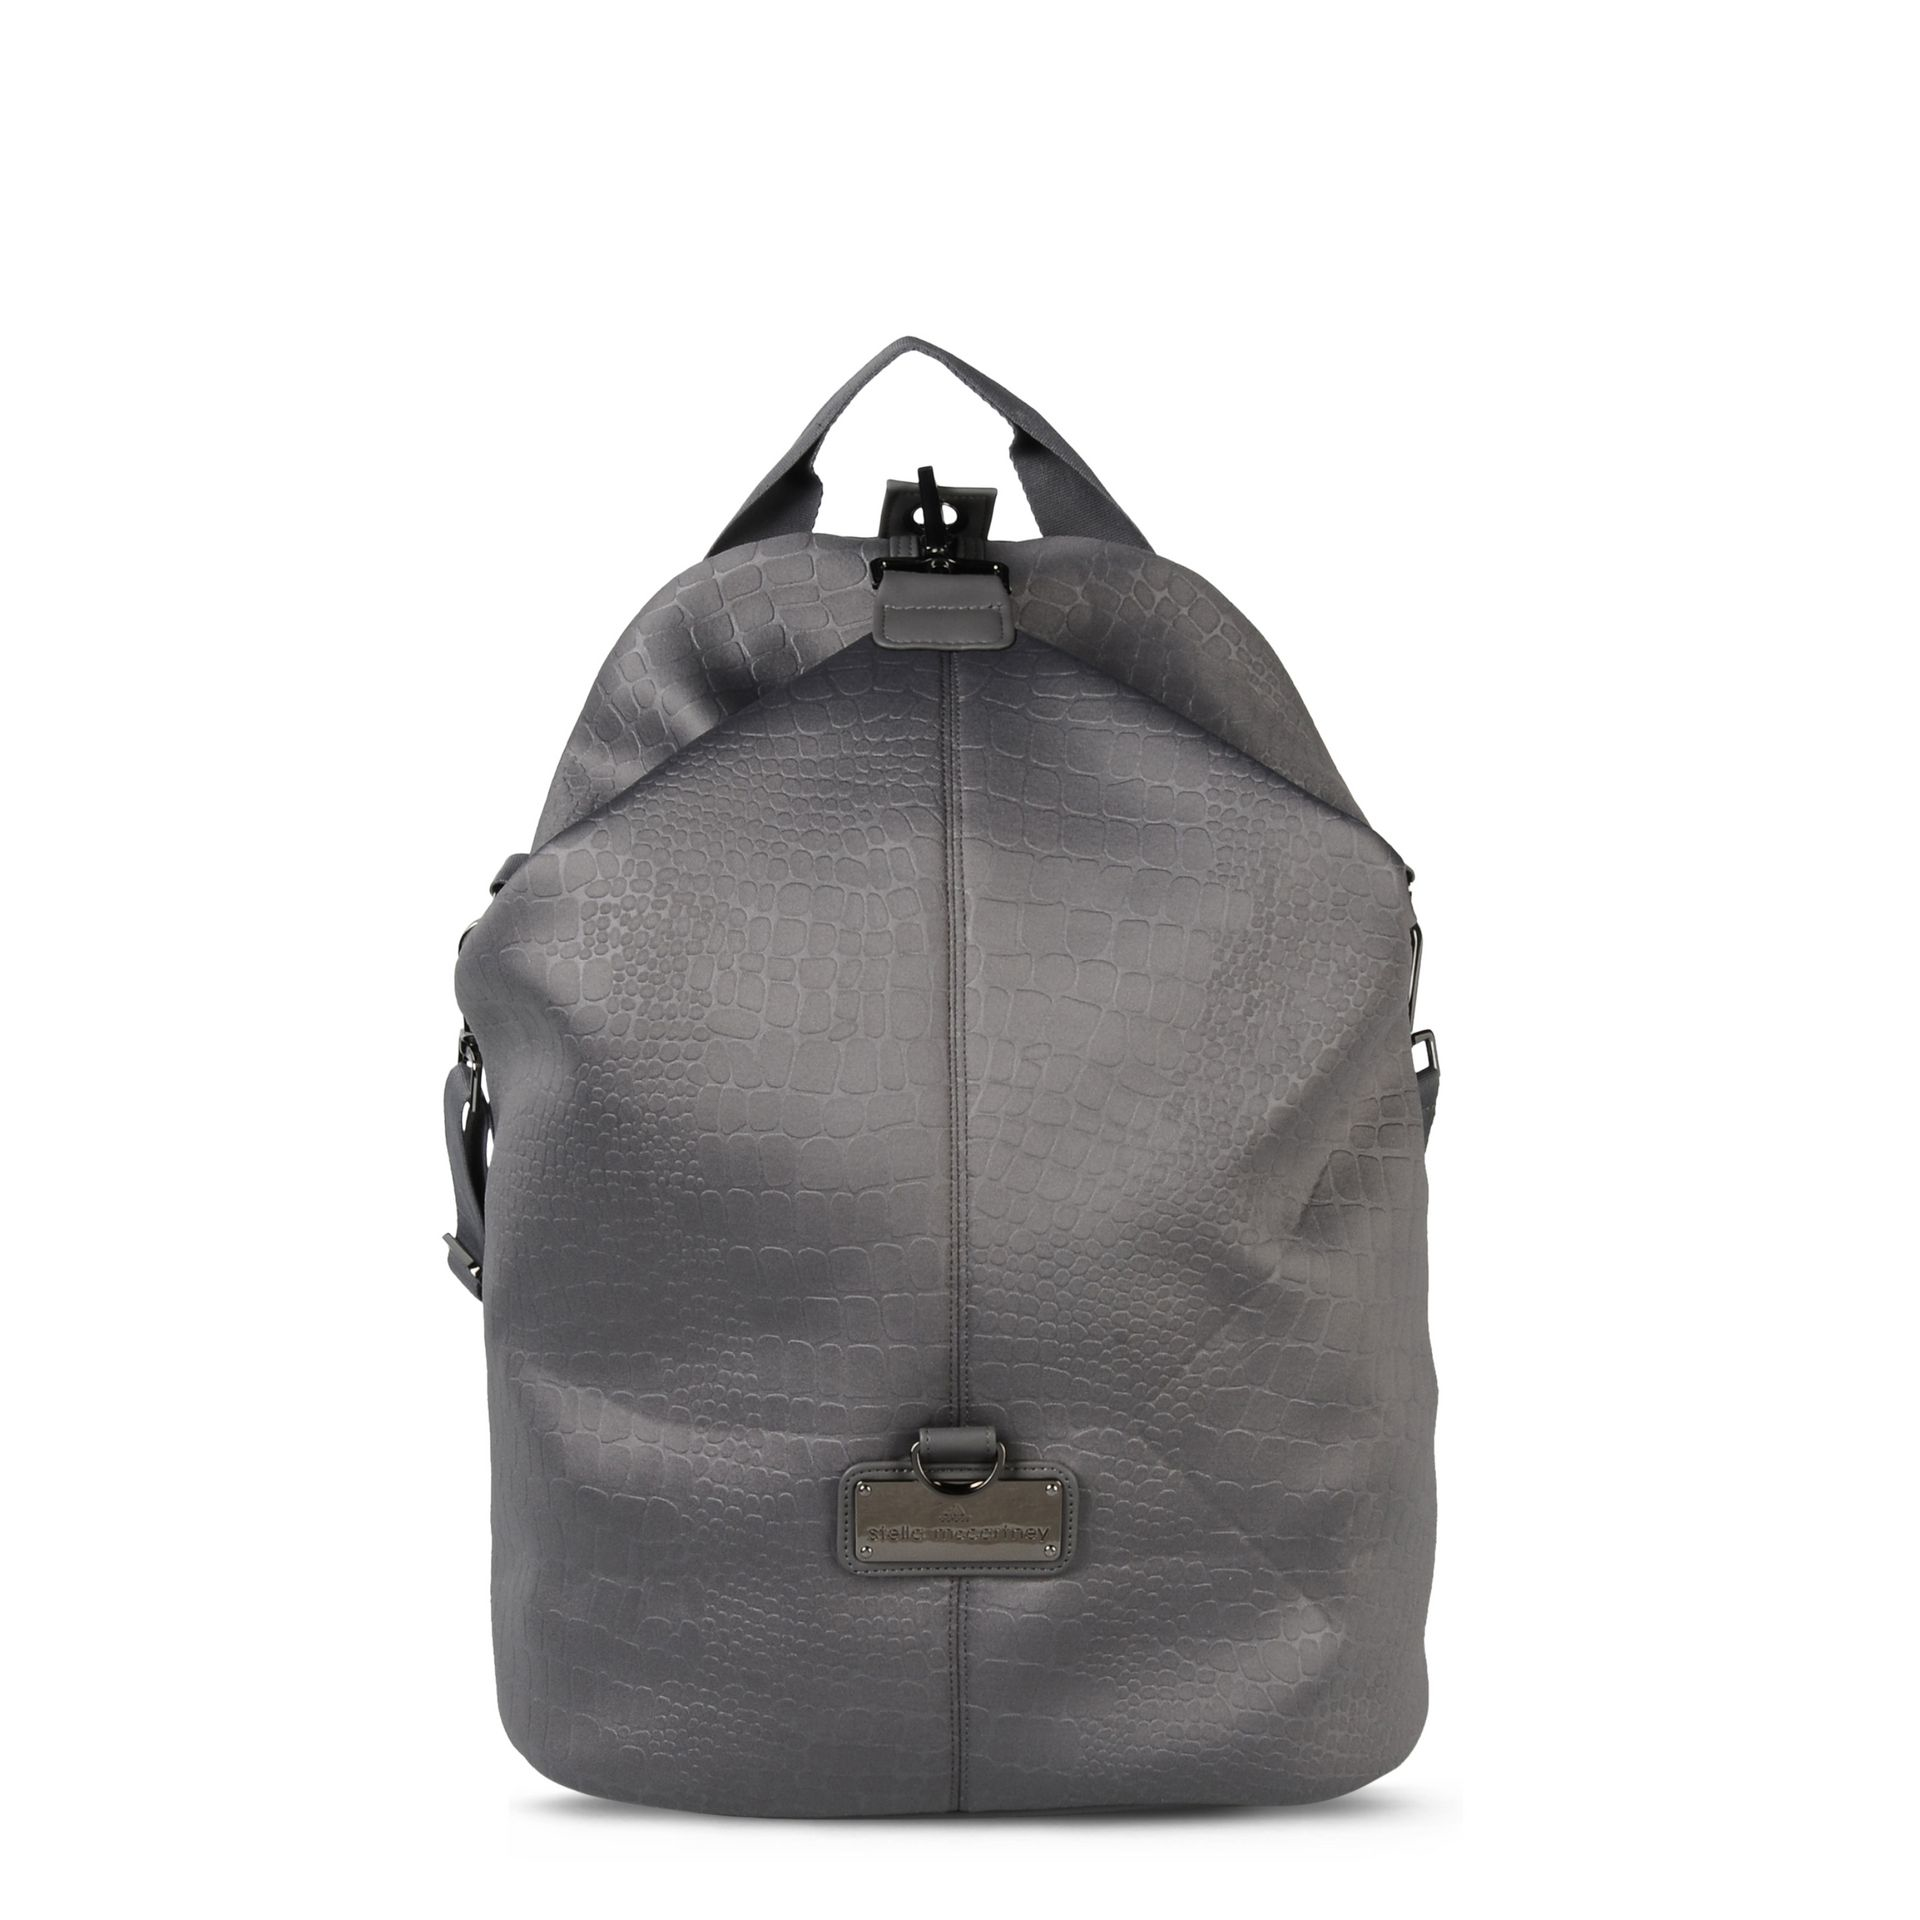 4a1ad45aecc8 Lyst - adidas By Stella McCartney Grey Studio Bag in Gray